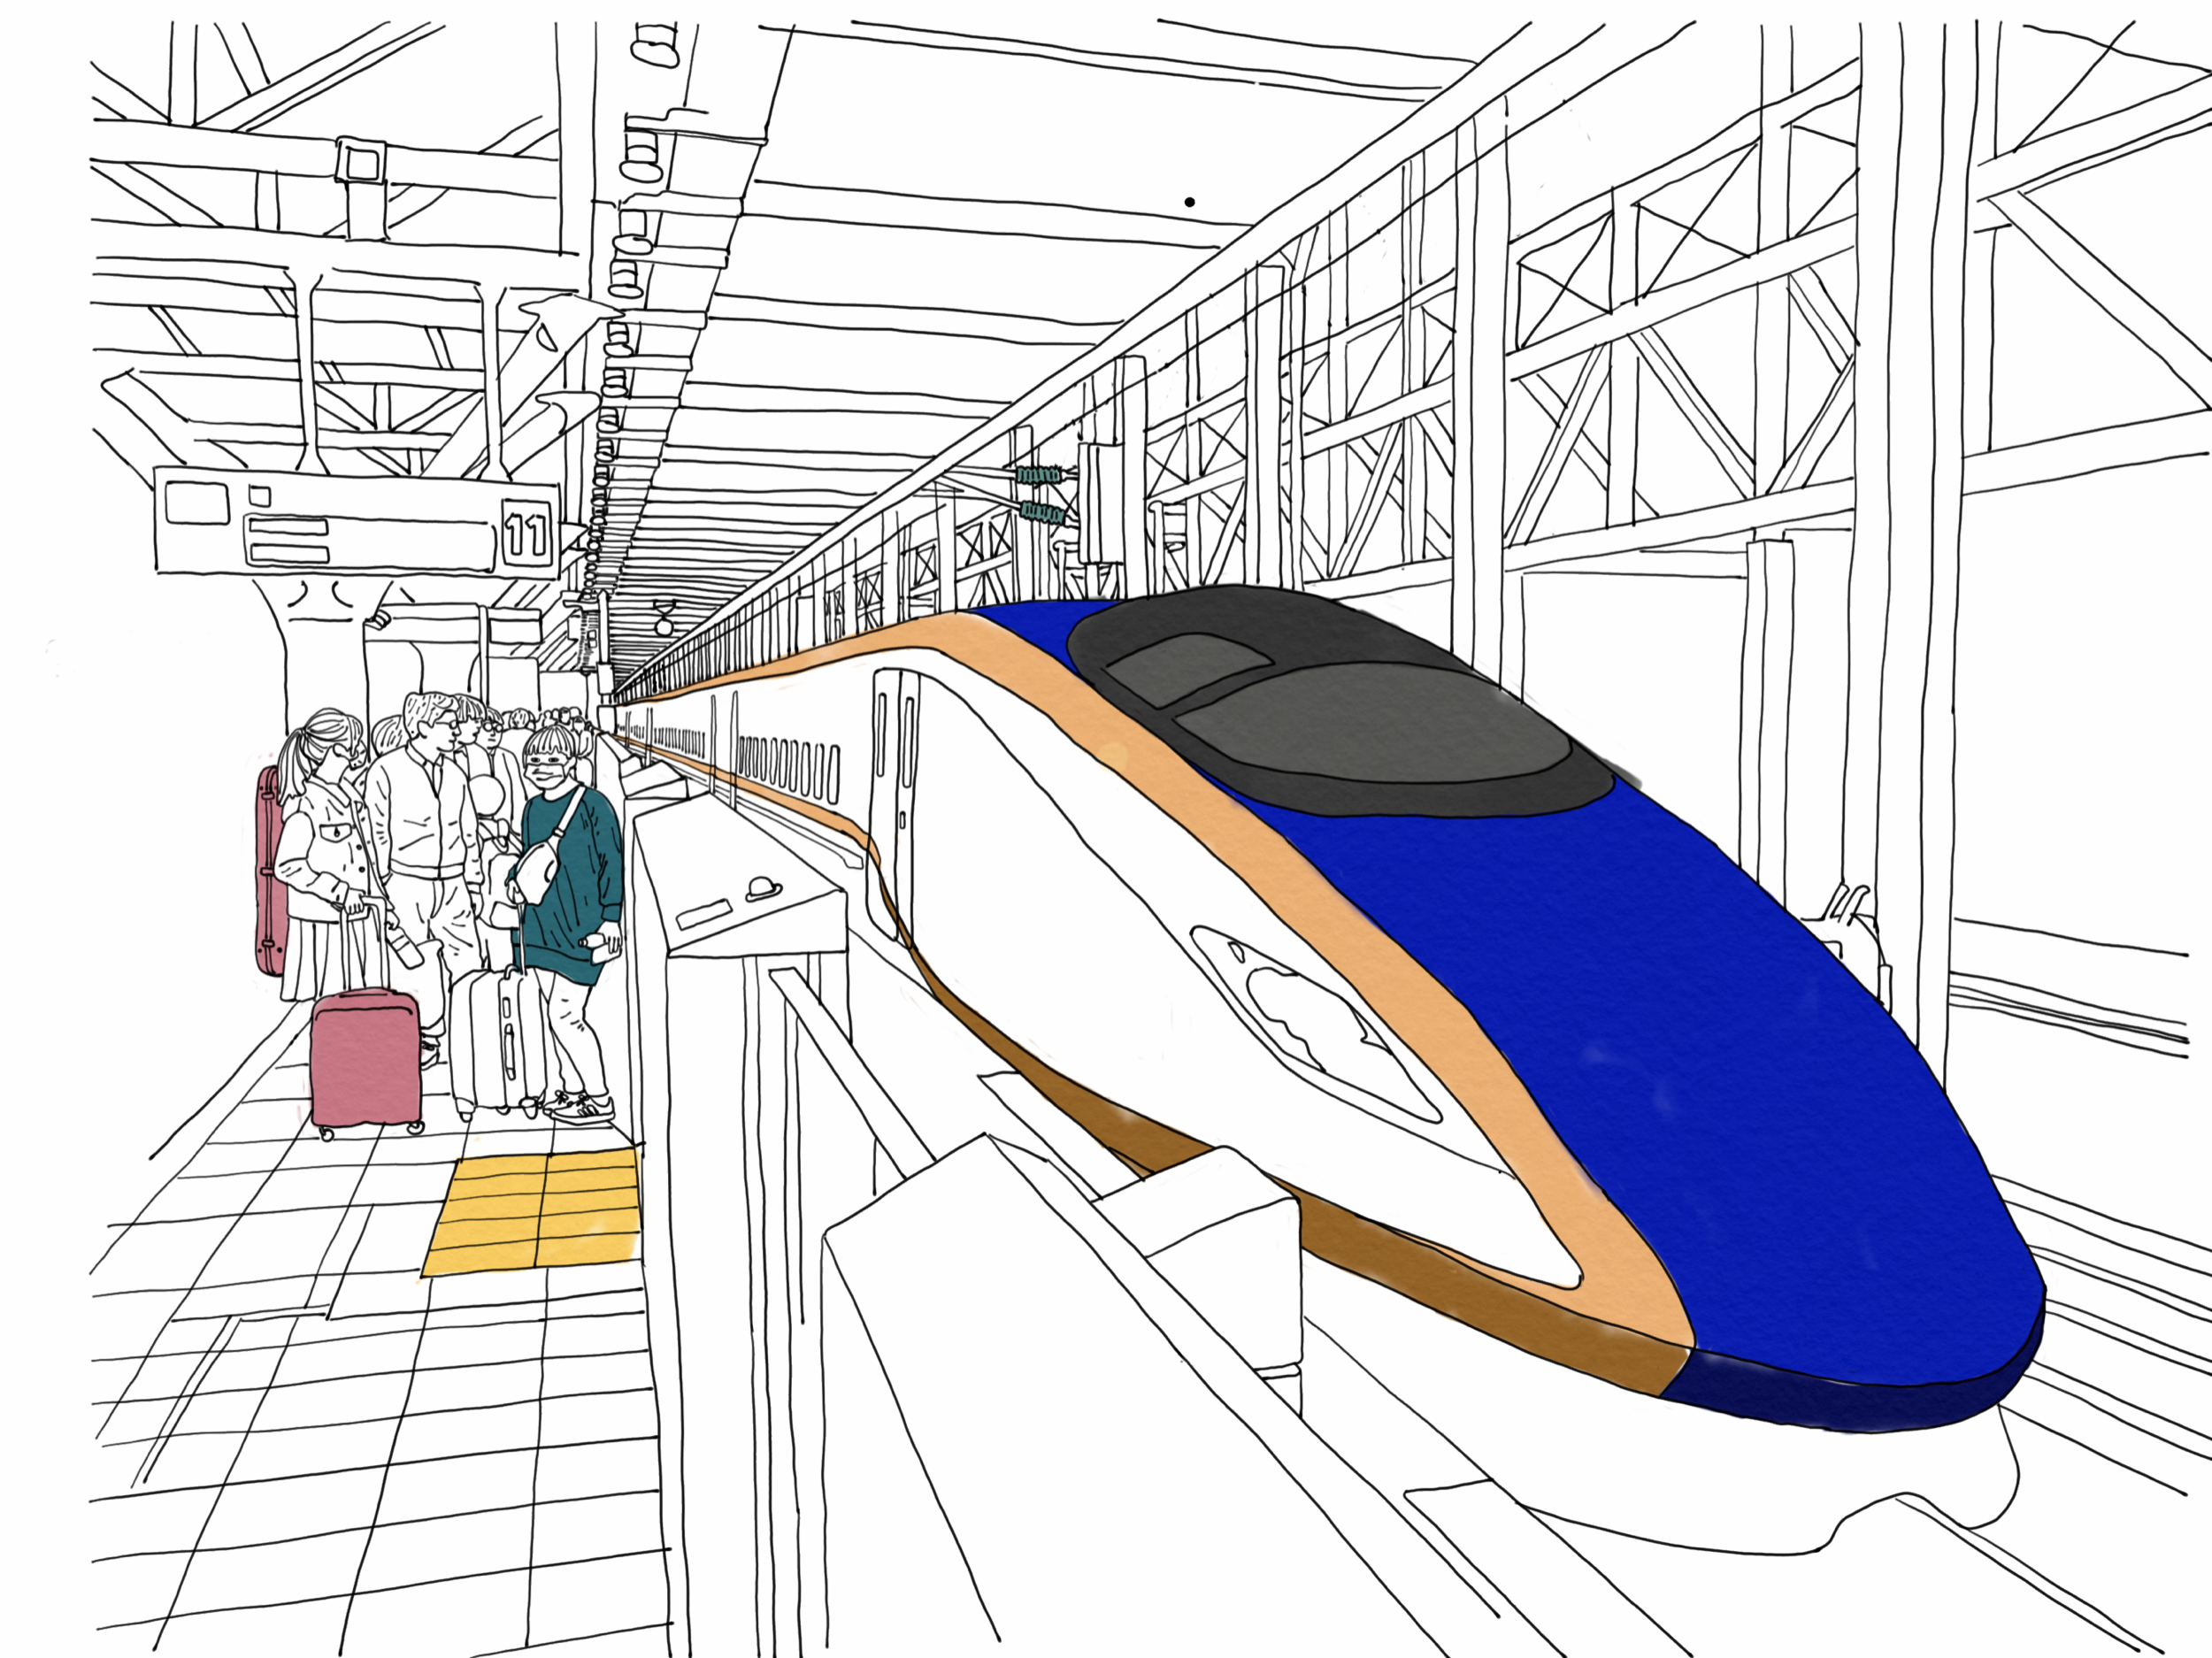 jordan_kushins_japan_shinkansen.png